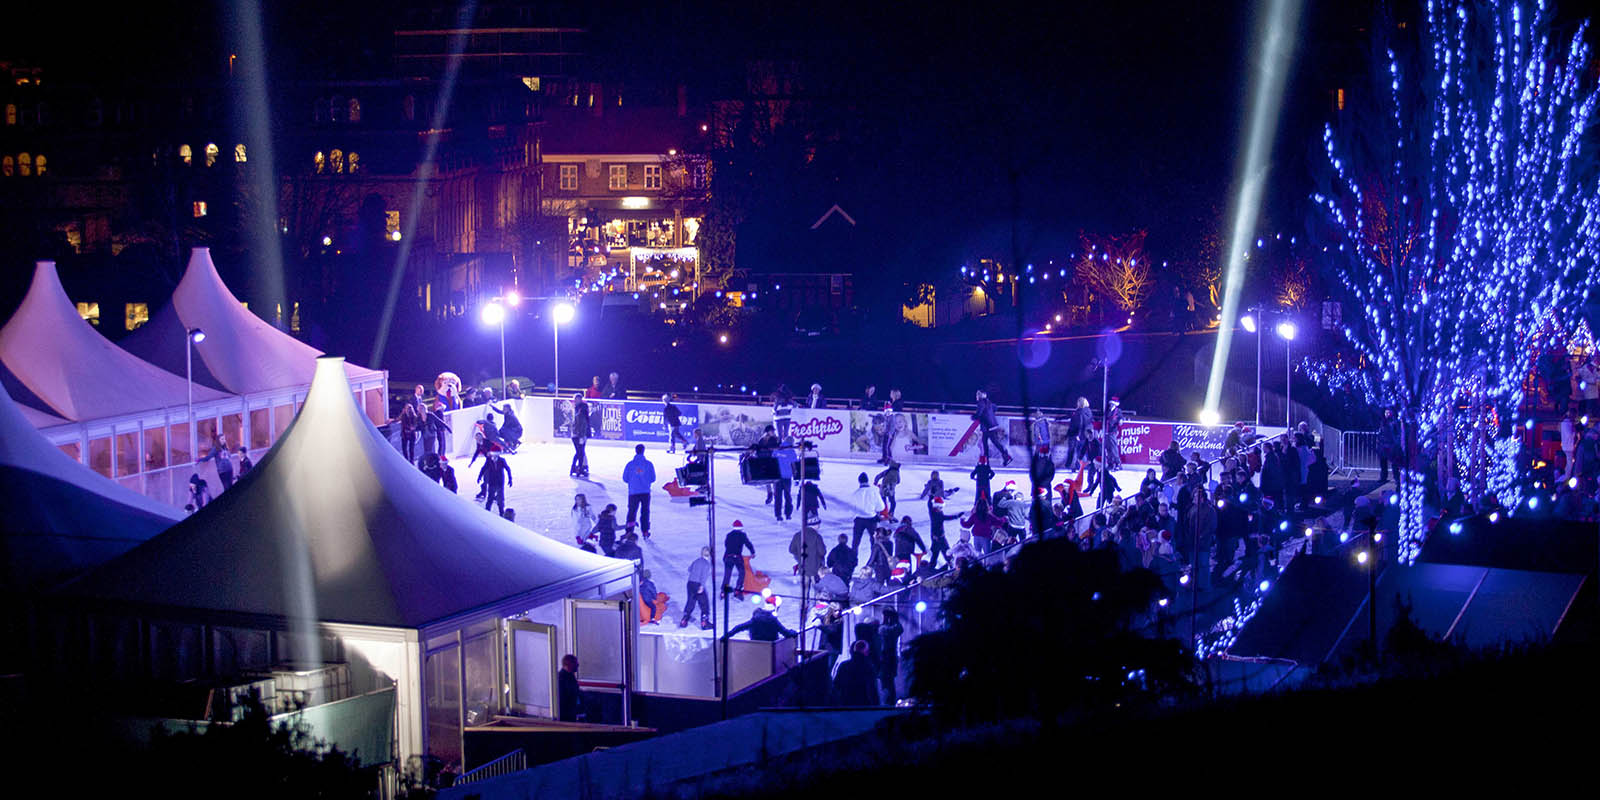 Tunbridge Wells Ice Rink at night